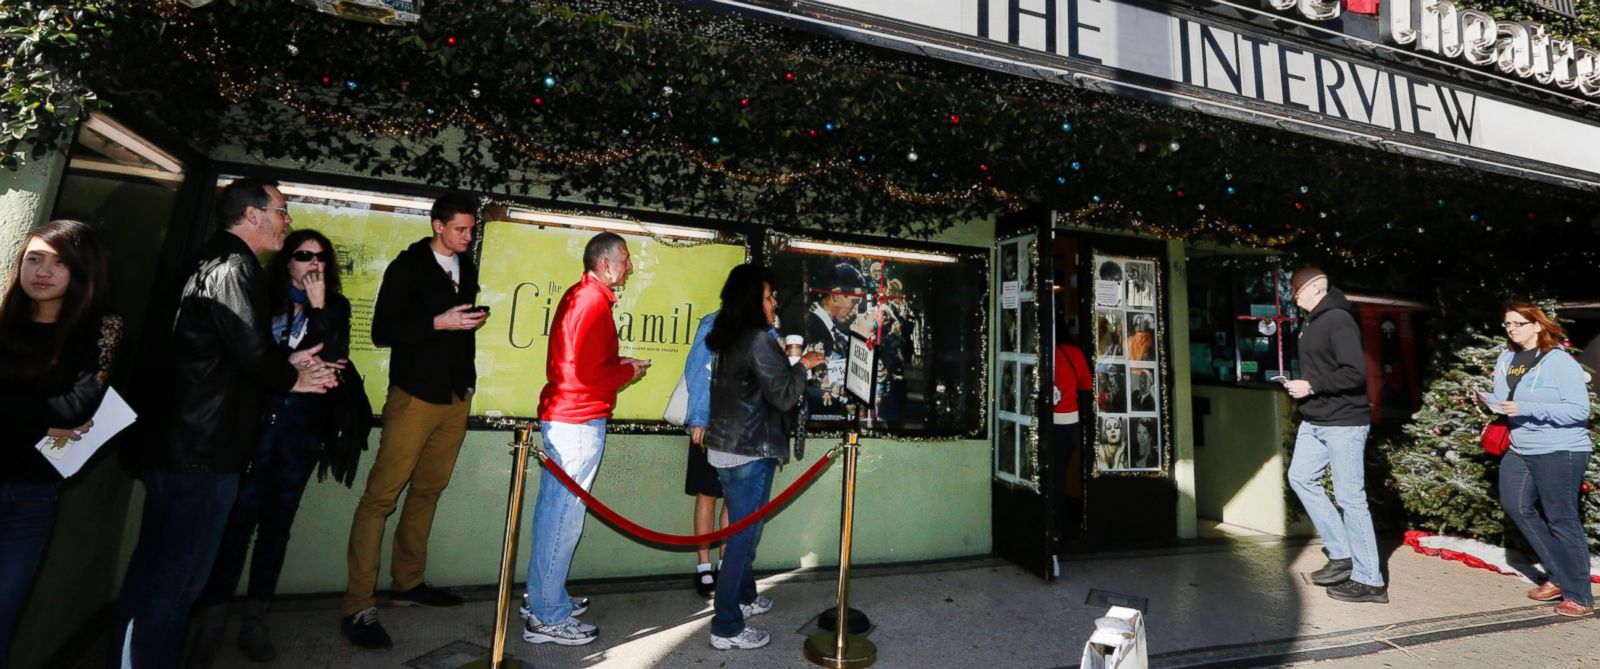 "PHOTO: Patrons queue up to see ""The Interview"" at the the Cinefamily at Silent Movie Theater in Los Angeles on Dec. 25, 2014."